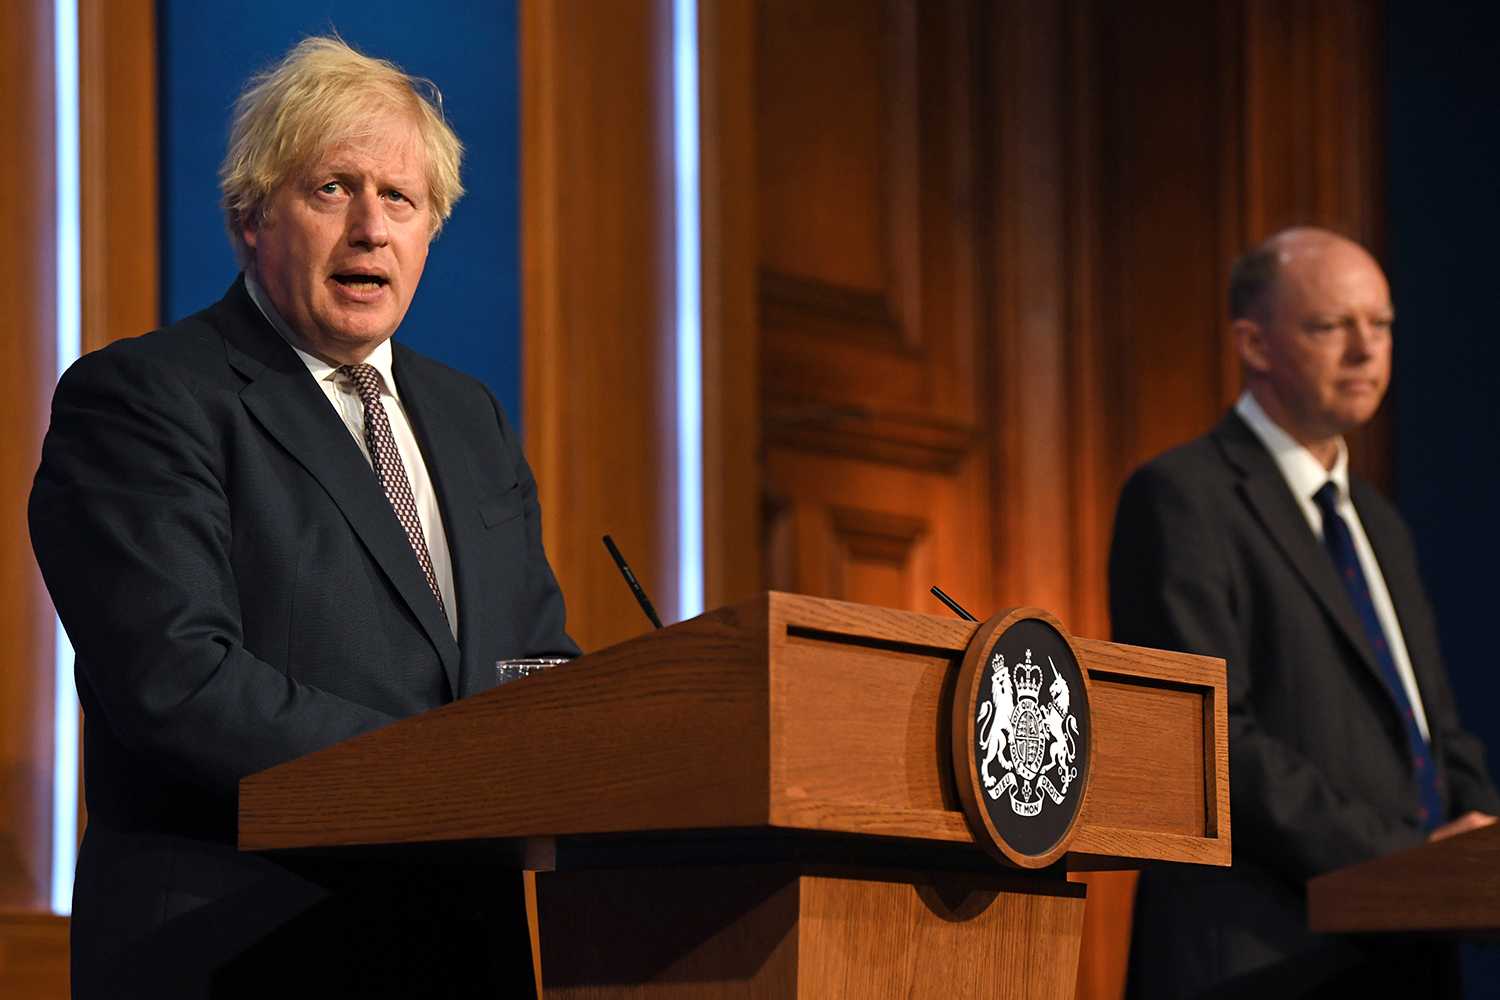 Downing Street press conference: Boris Johnson reveals details of 'freedom day'